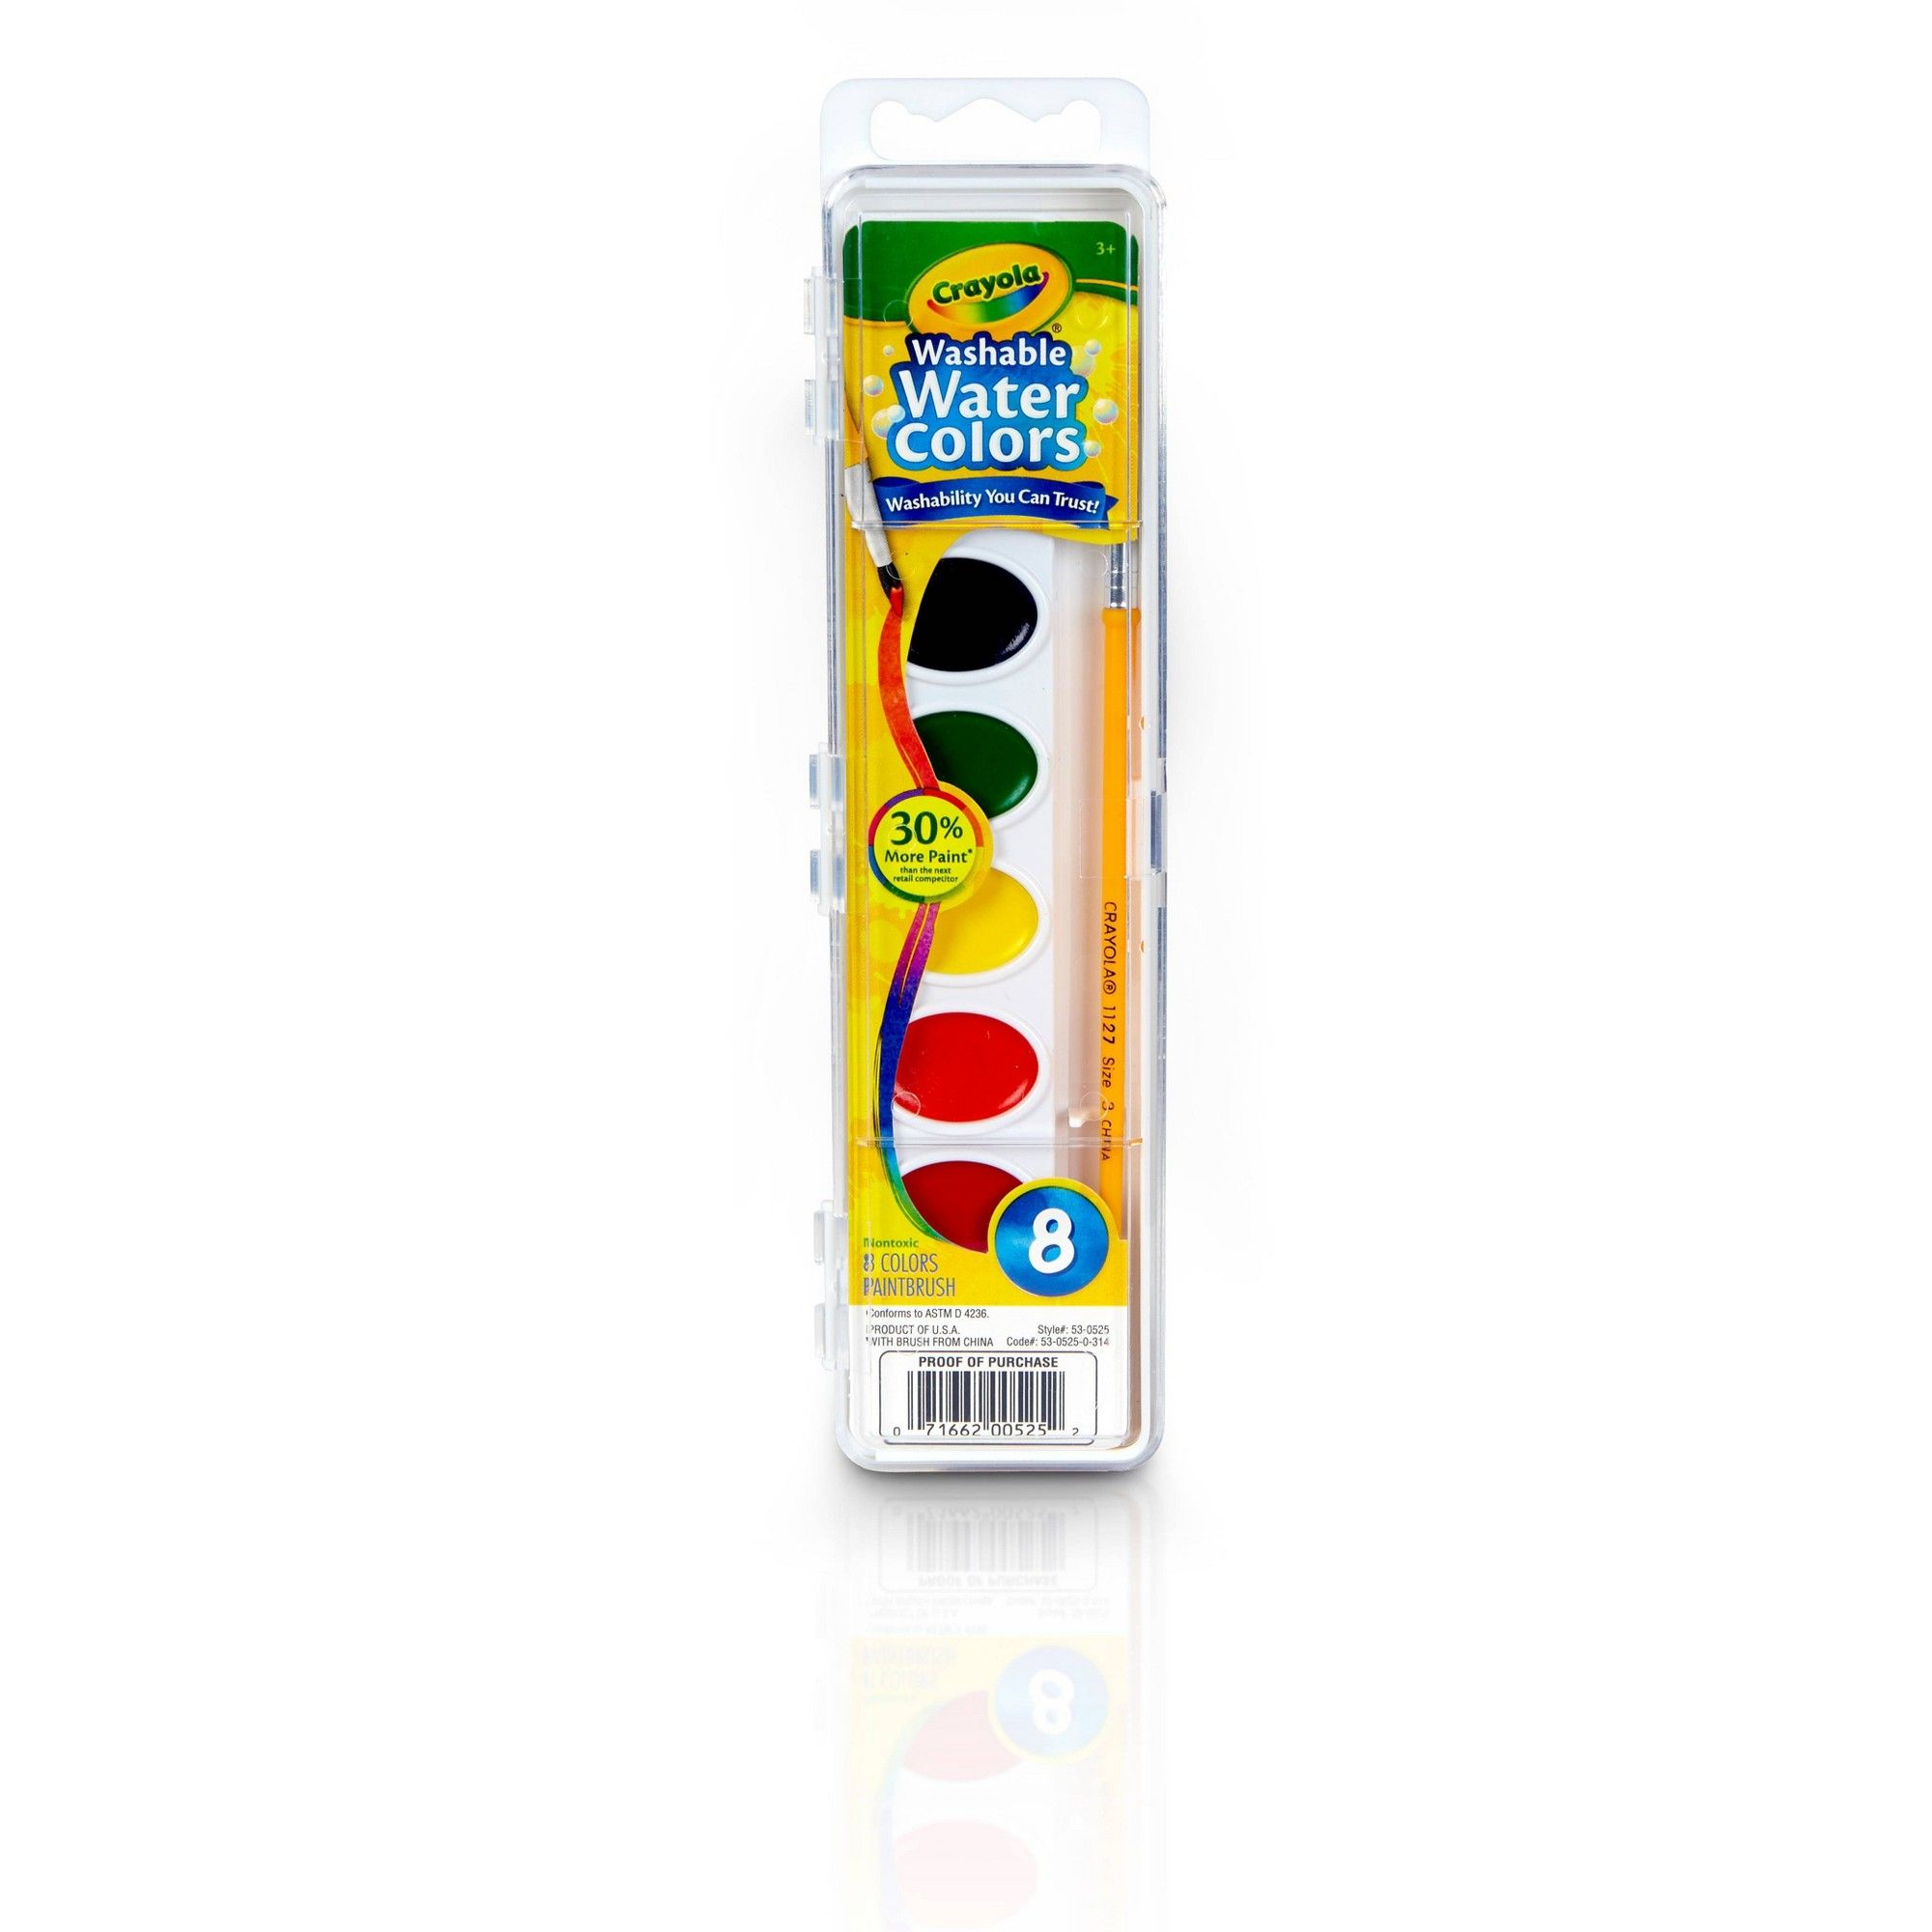 Crayola Watercolor Paints With Brush Washable 8ct Painting For